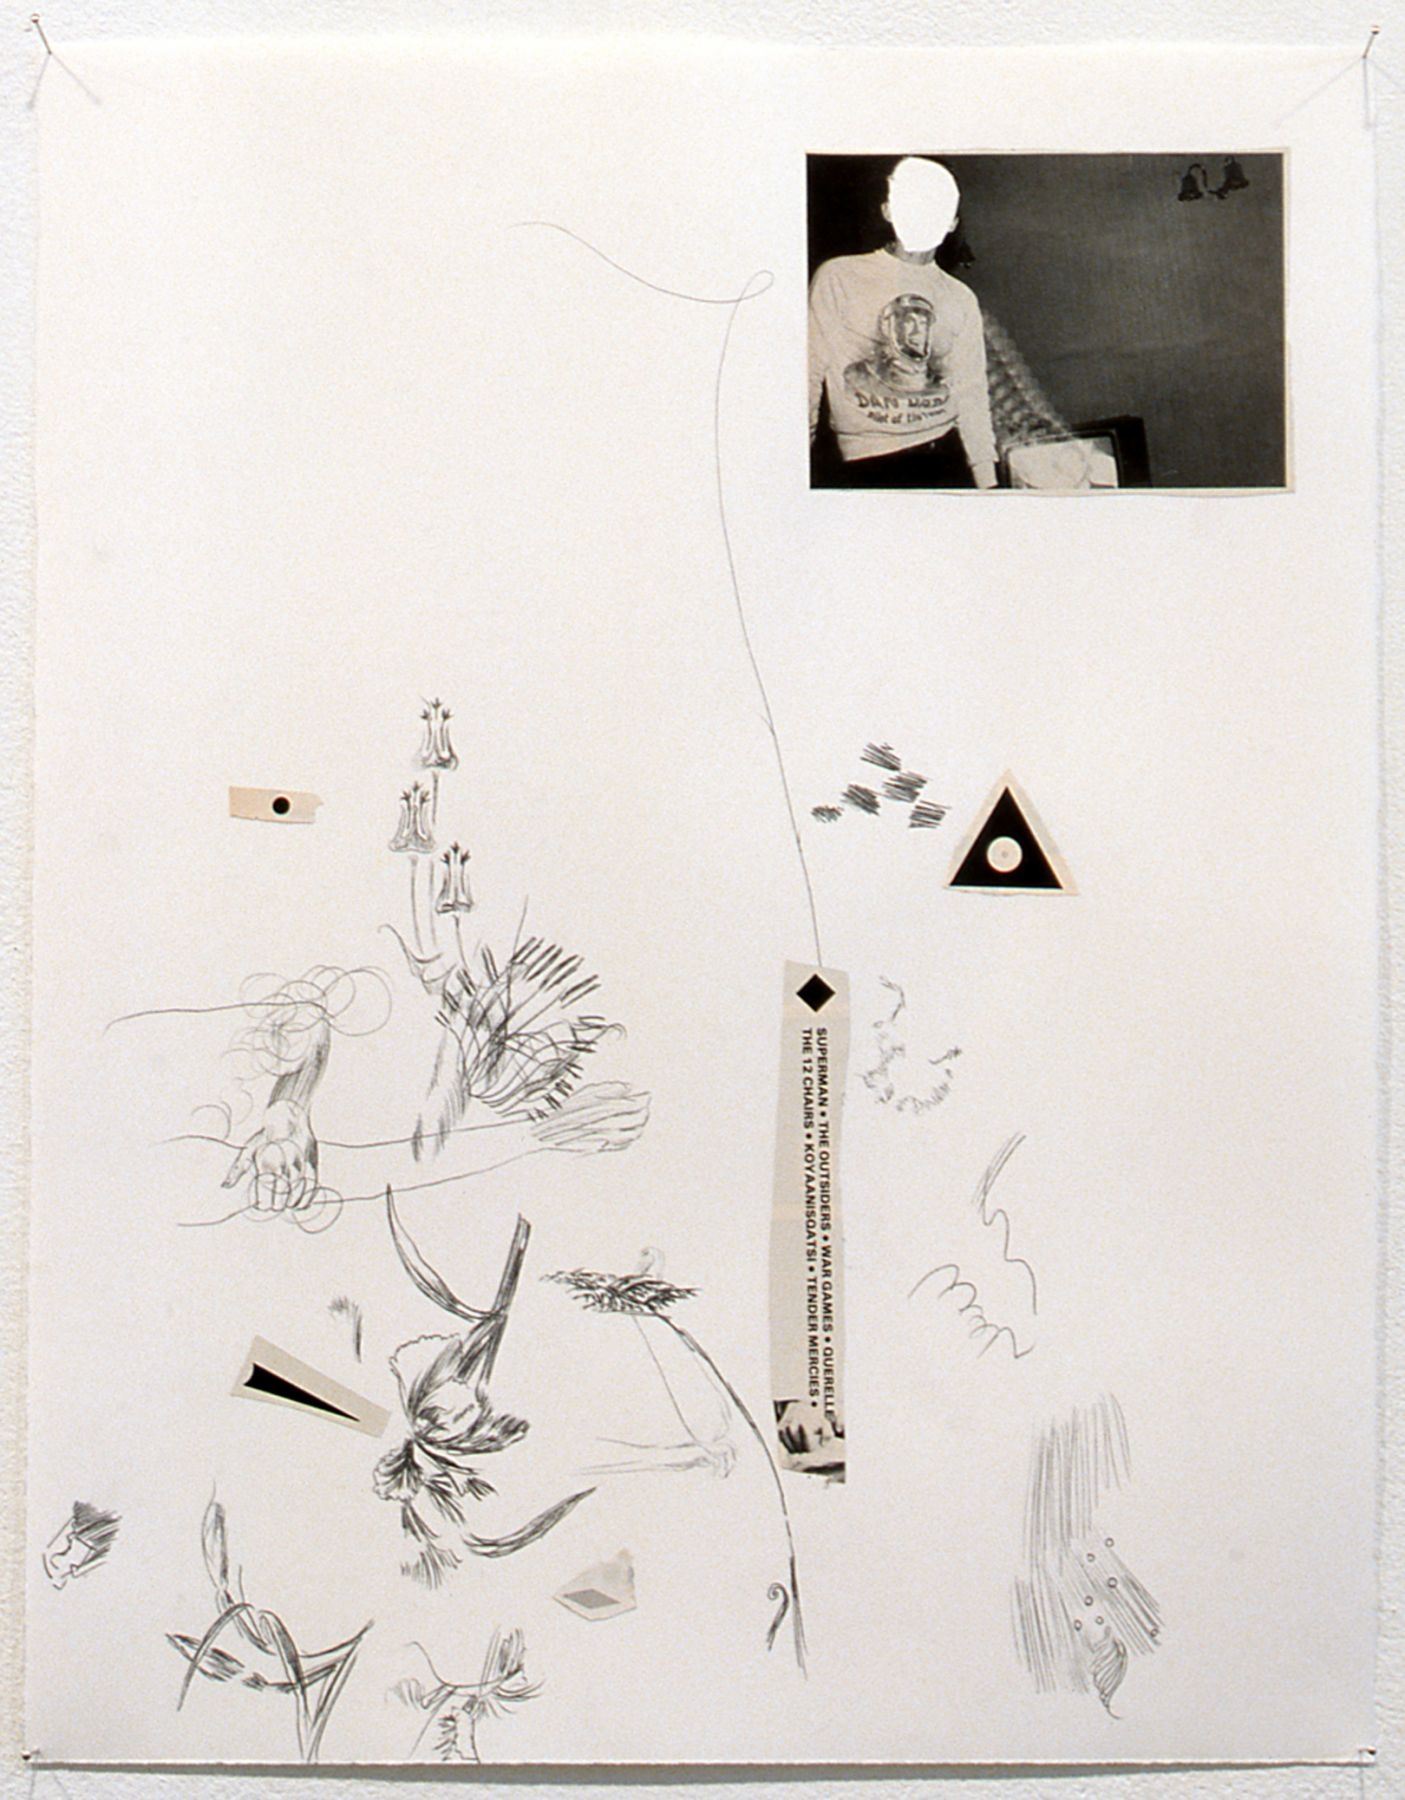 Nick Mauss, Pleasures and Regrets, 2003, Mixed media, 16 3/4 x 13 inches